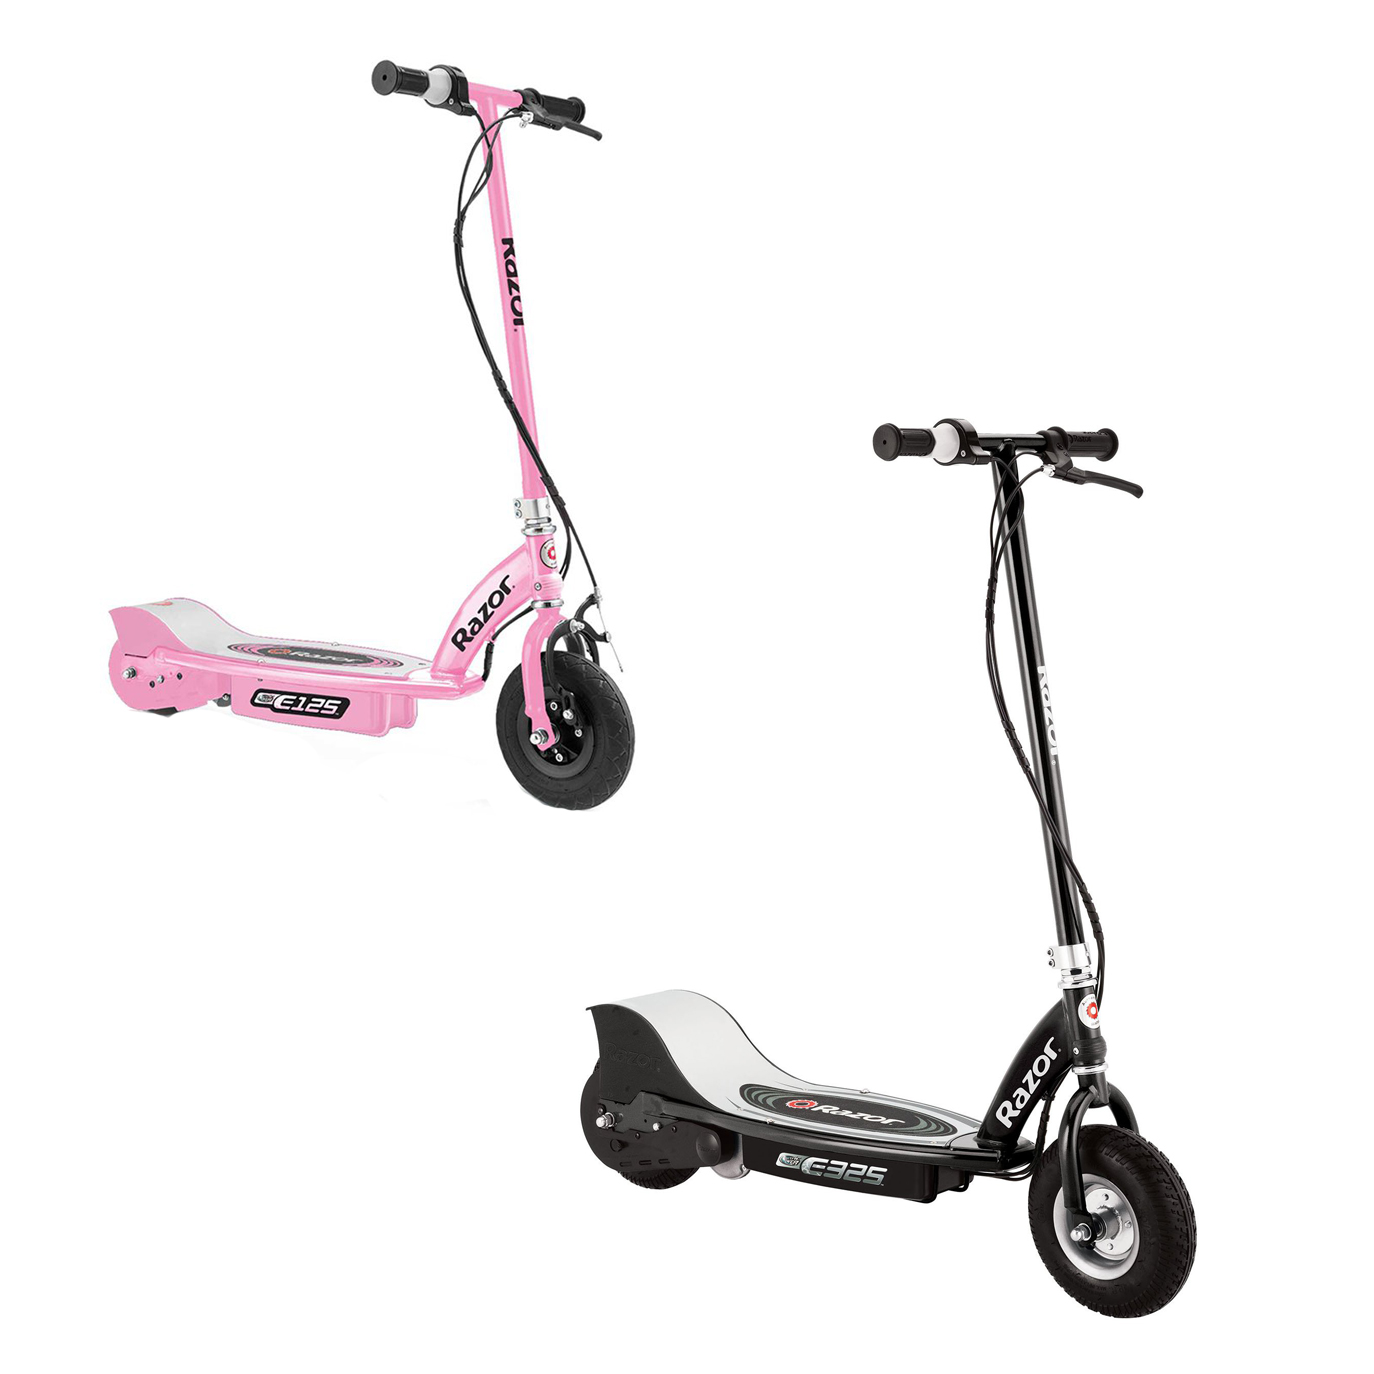 Razor Electric Rechargeable Motorized Ride On Kids Scooters, 1 Black & 1 Pink by Razor